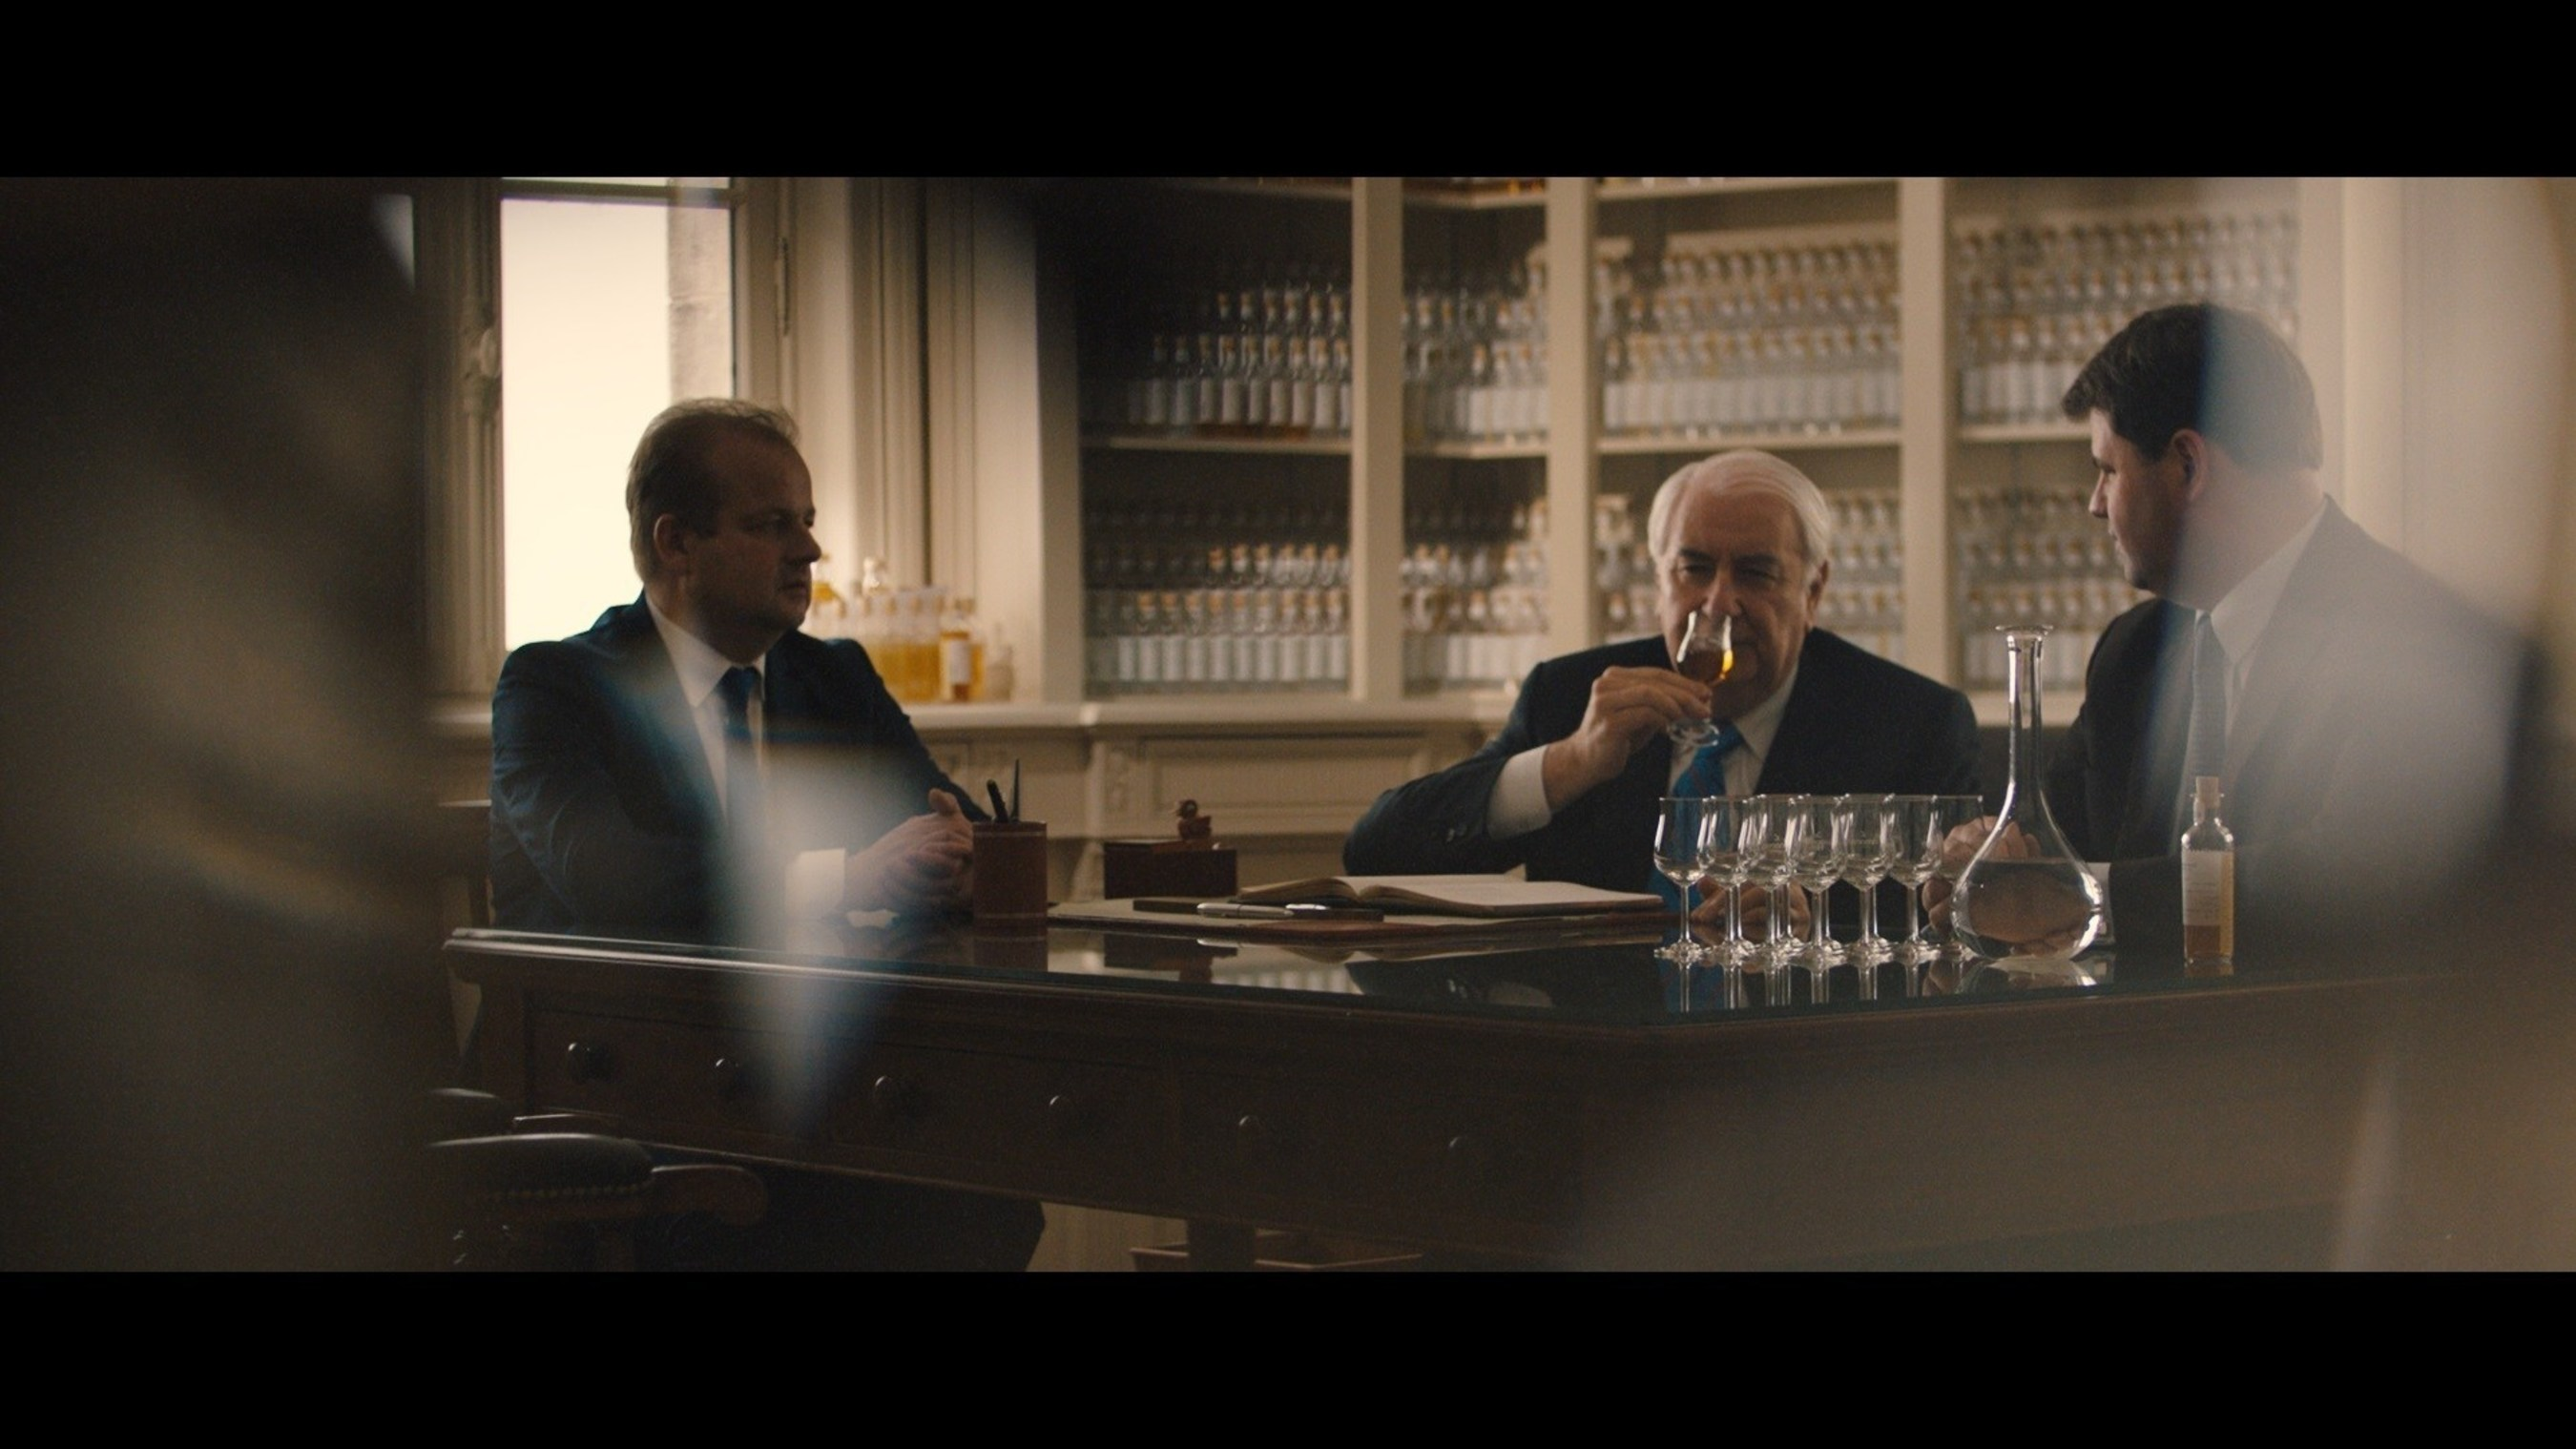 """Hennessy's Tasting Committee oversees the numerous, complex variables that are mastered in order to create the harmony and balance of Hennessy V.S.O.P Privilège in new """"Harmony. Mastered from Chaos."""" campaign."""